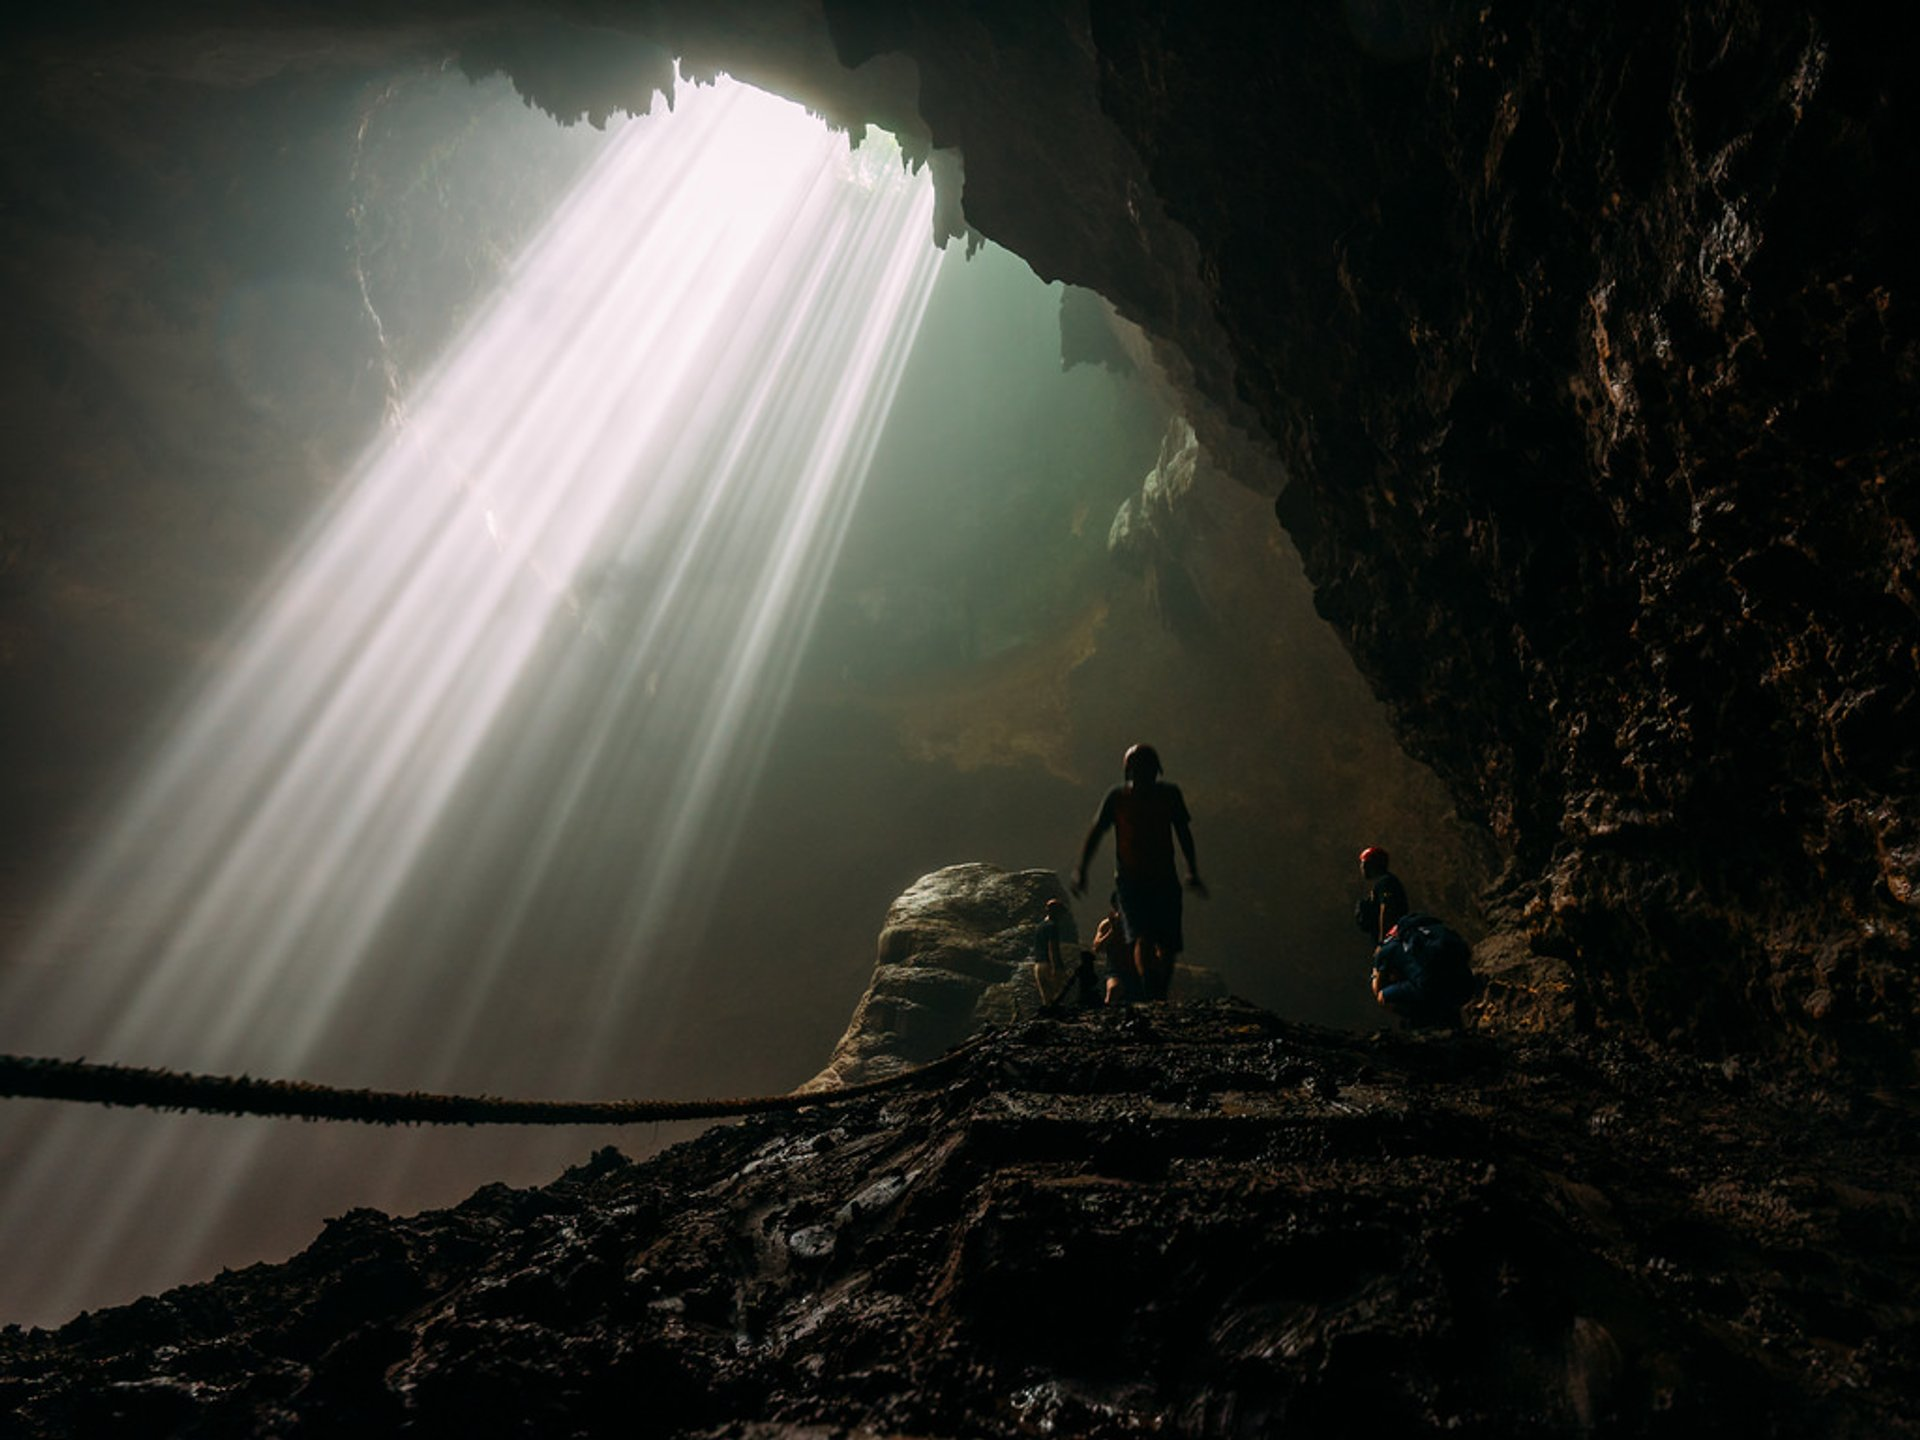 Heaven Light (Jomblang Cave) in Indonesia 2019 - Best Time